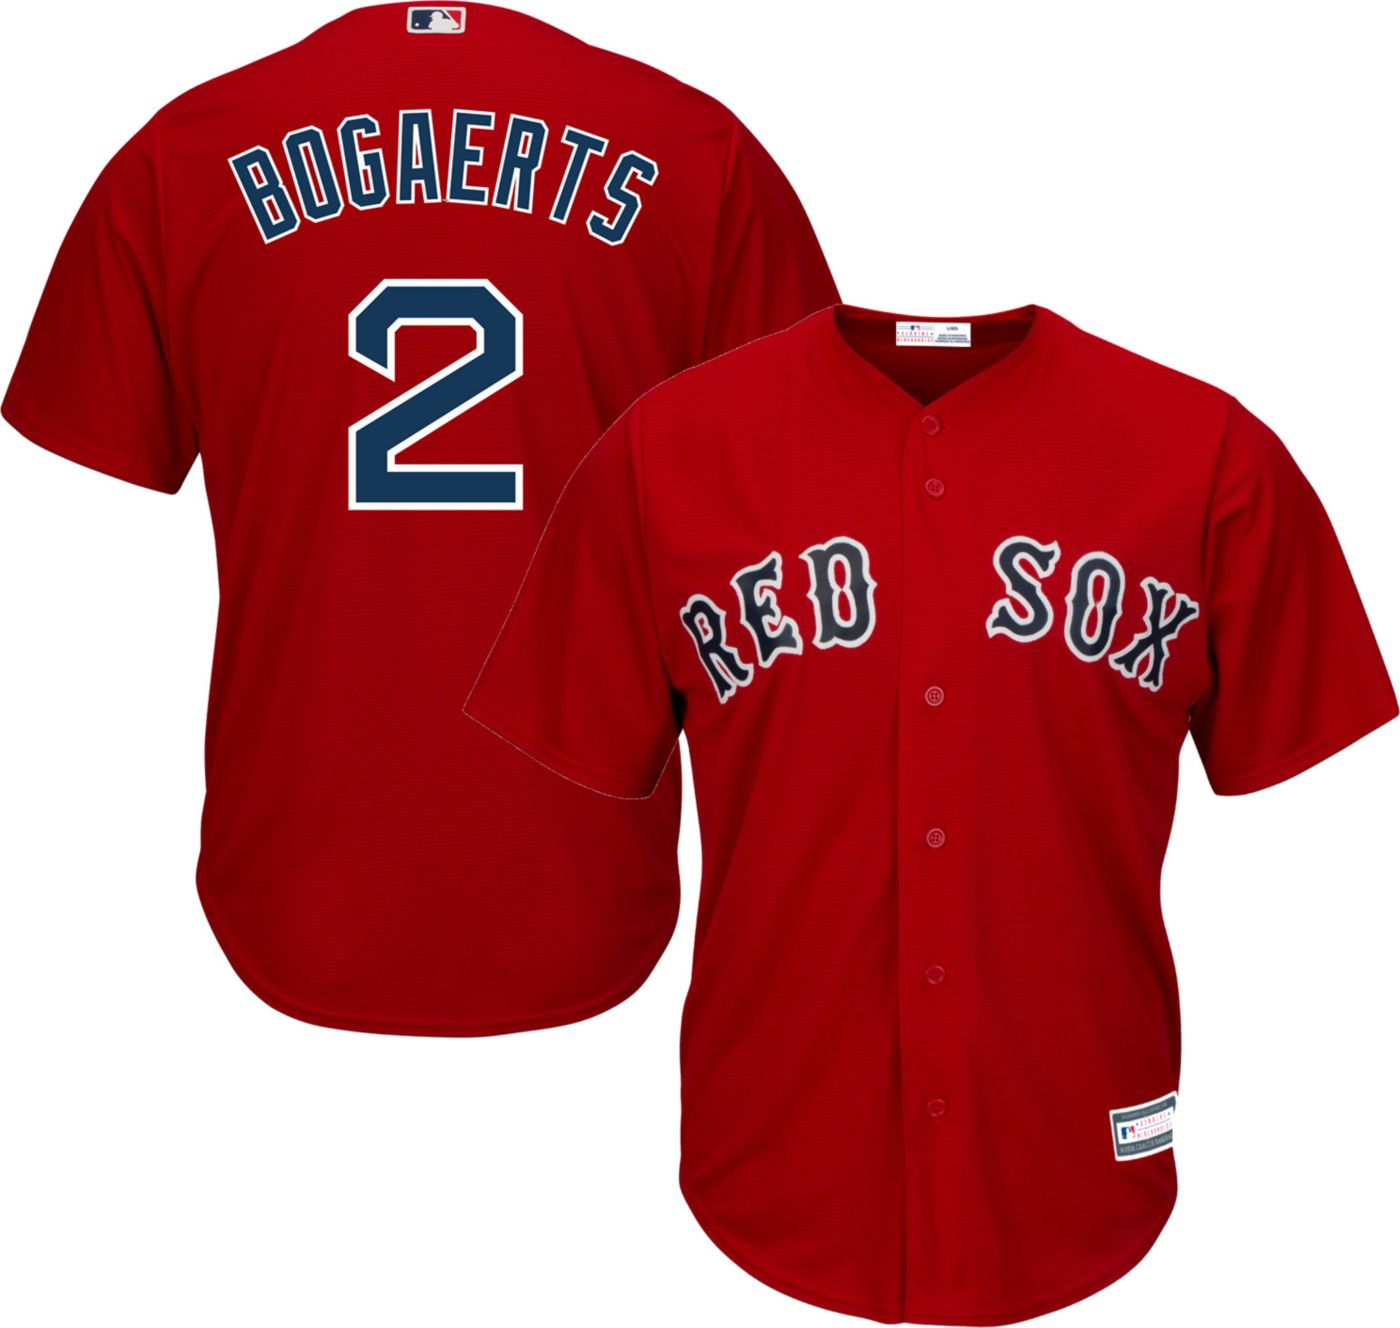 Youth Replica Boston Red Sox Xander Boegarts #2 Alternate Red Jersey